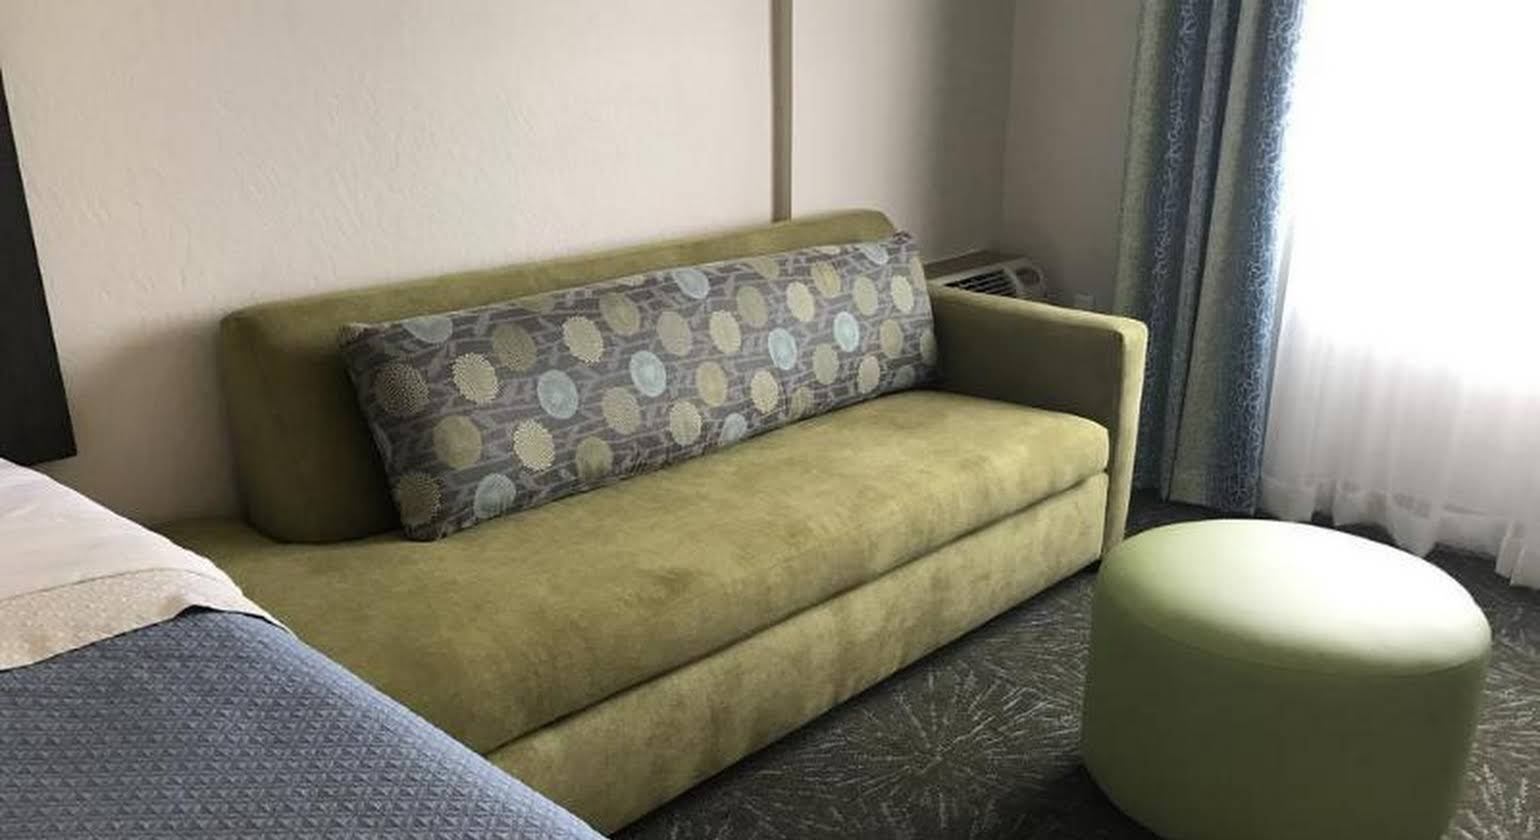 Days Inn and Suites, East Flagstaff